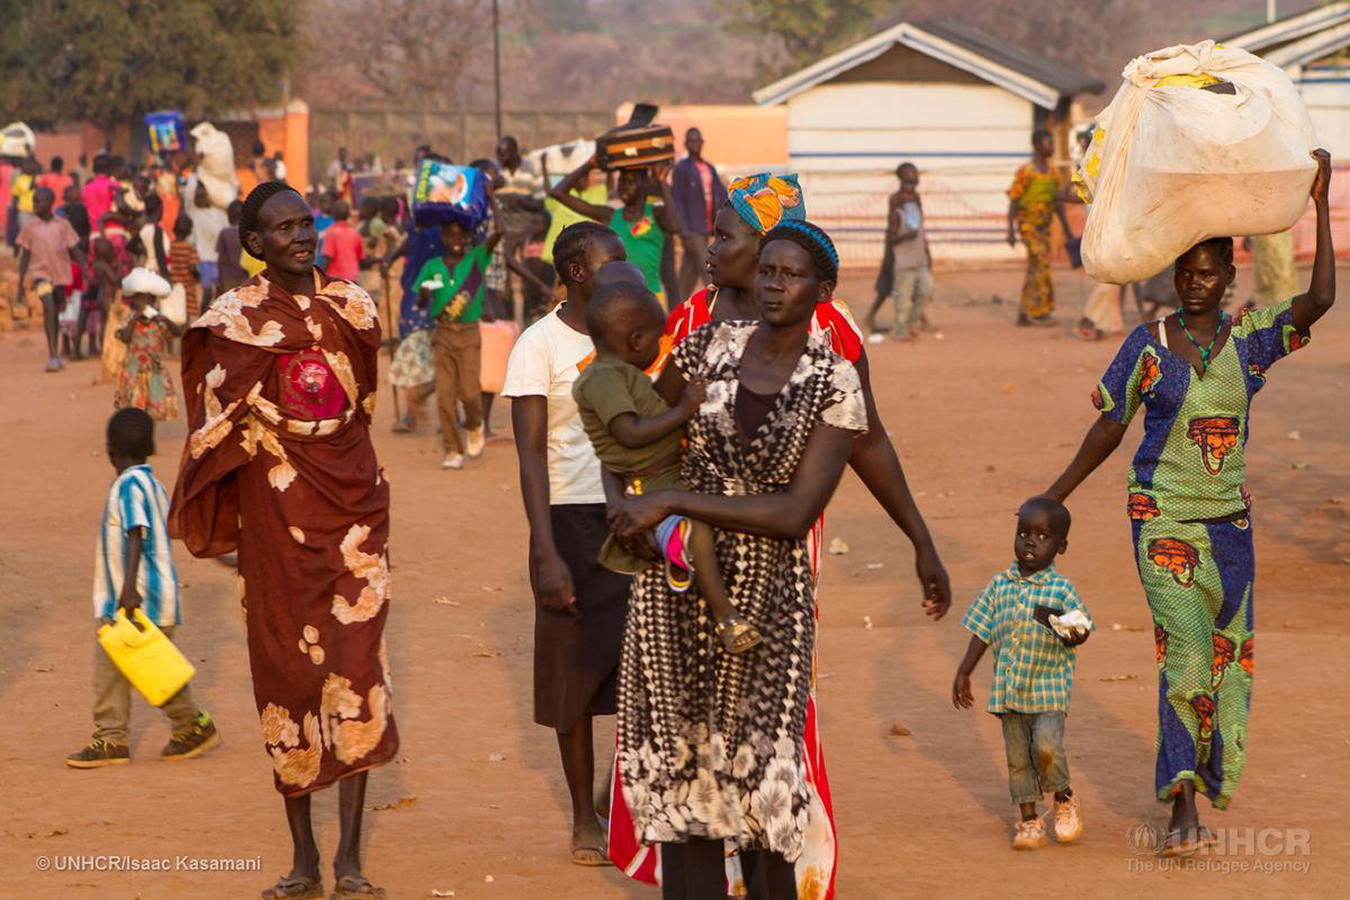 Newly arrived South Sudanese refugees carry their belongings at the Nyumanzi reception center in Adjumani, a district in northern Uganda. Since the first week of January 2016, Uganda has seen an influx of 4,587 refugees from the neighboring war-torn country of South Sudan. | Photo courtesy © UNHCR/Isaac Kasamani